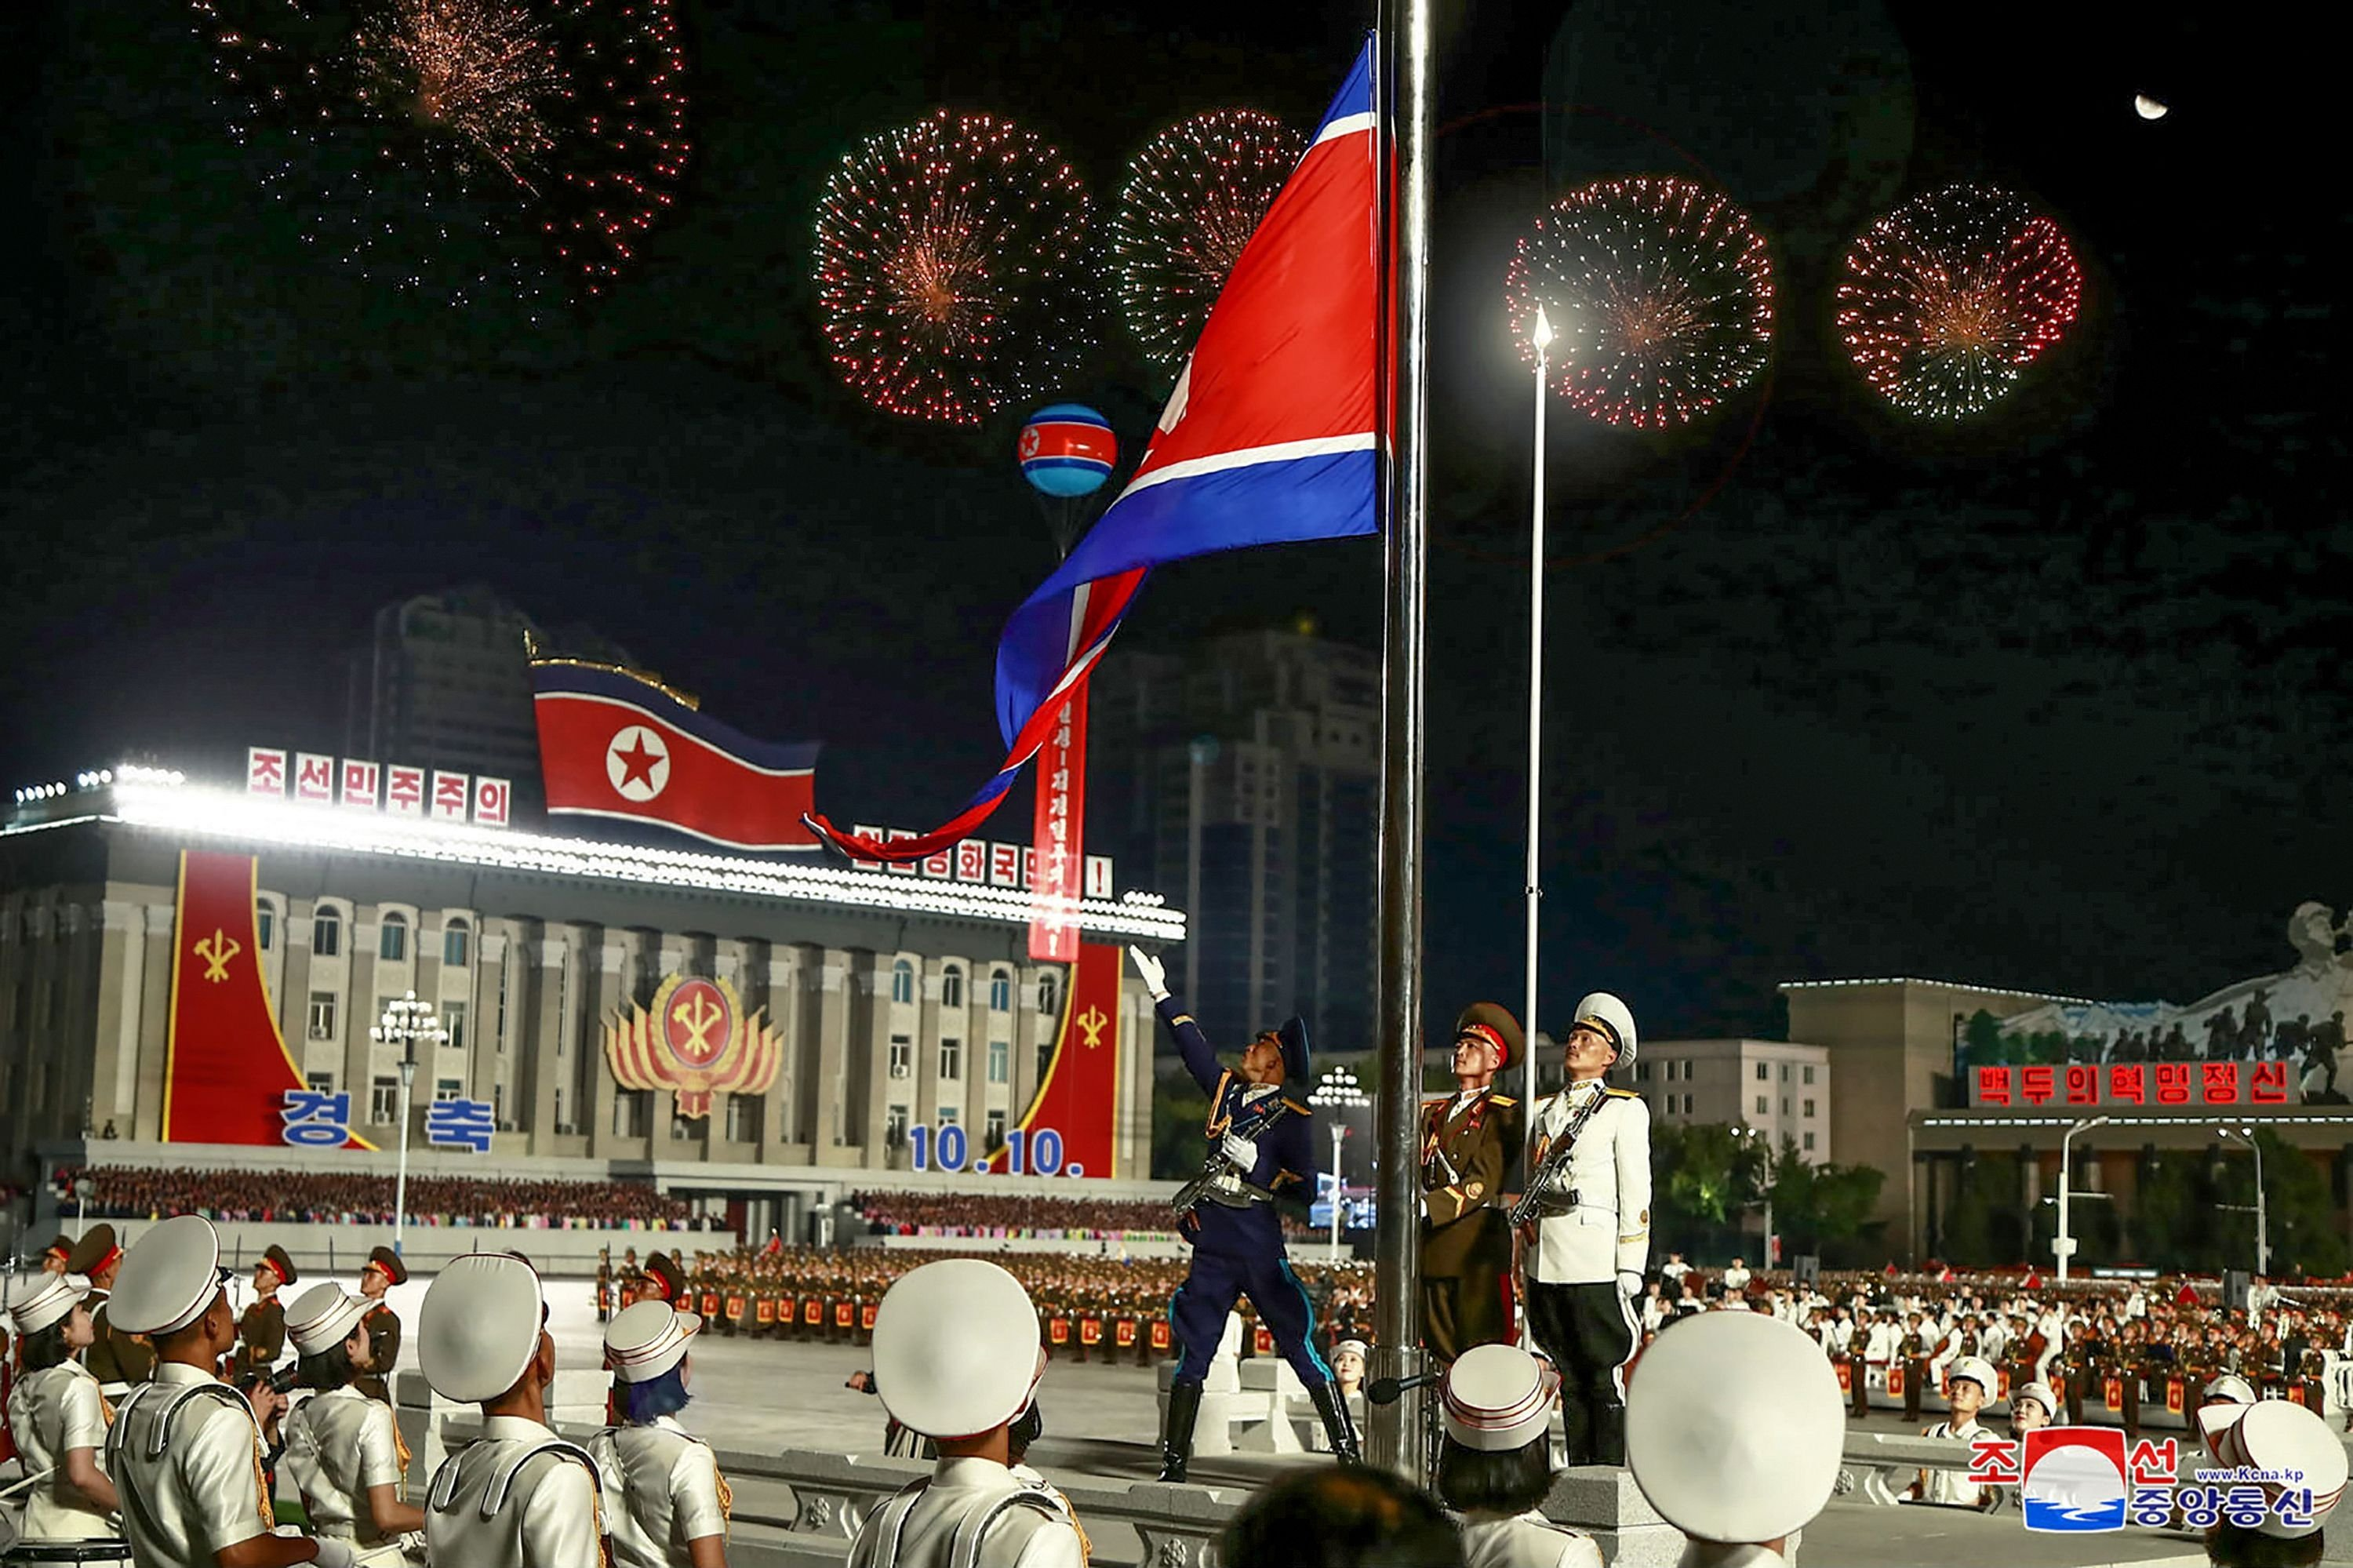 North Korea's official Korean Central News Agency (KCNA) shows the military parade during a ceremony to mark the 75th anniversary of the Workers' Party of Korea at Kim Il-sung Square of Pyongyang, Oct. 10, 2020. (Photo by - / KCNA VIA KNS / AFP)